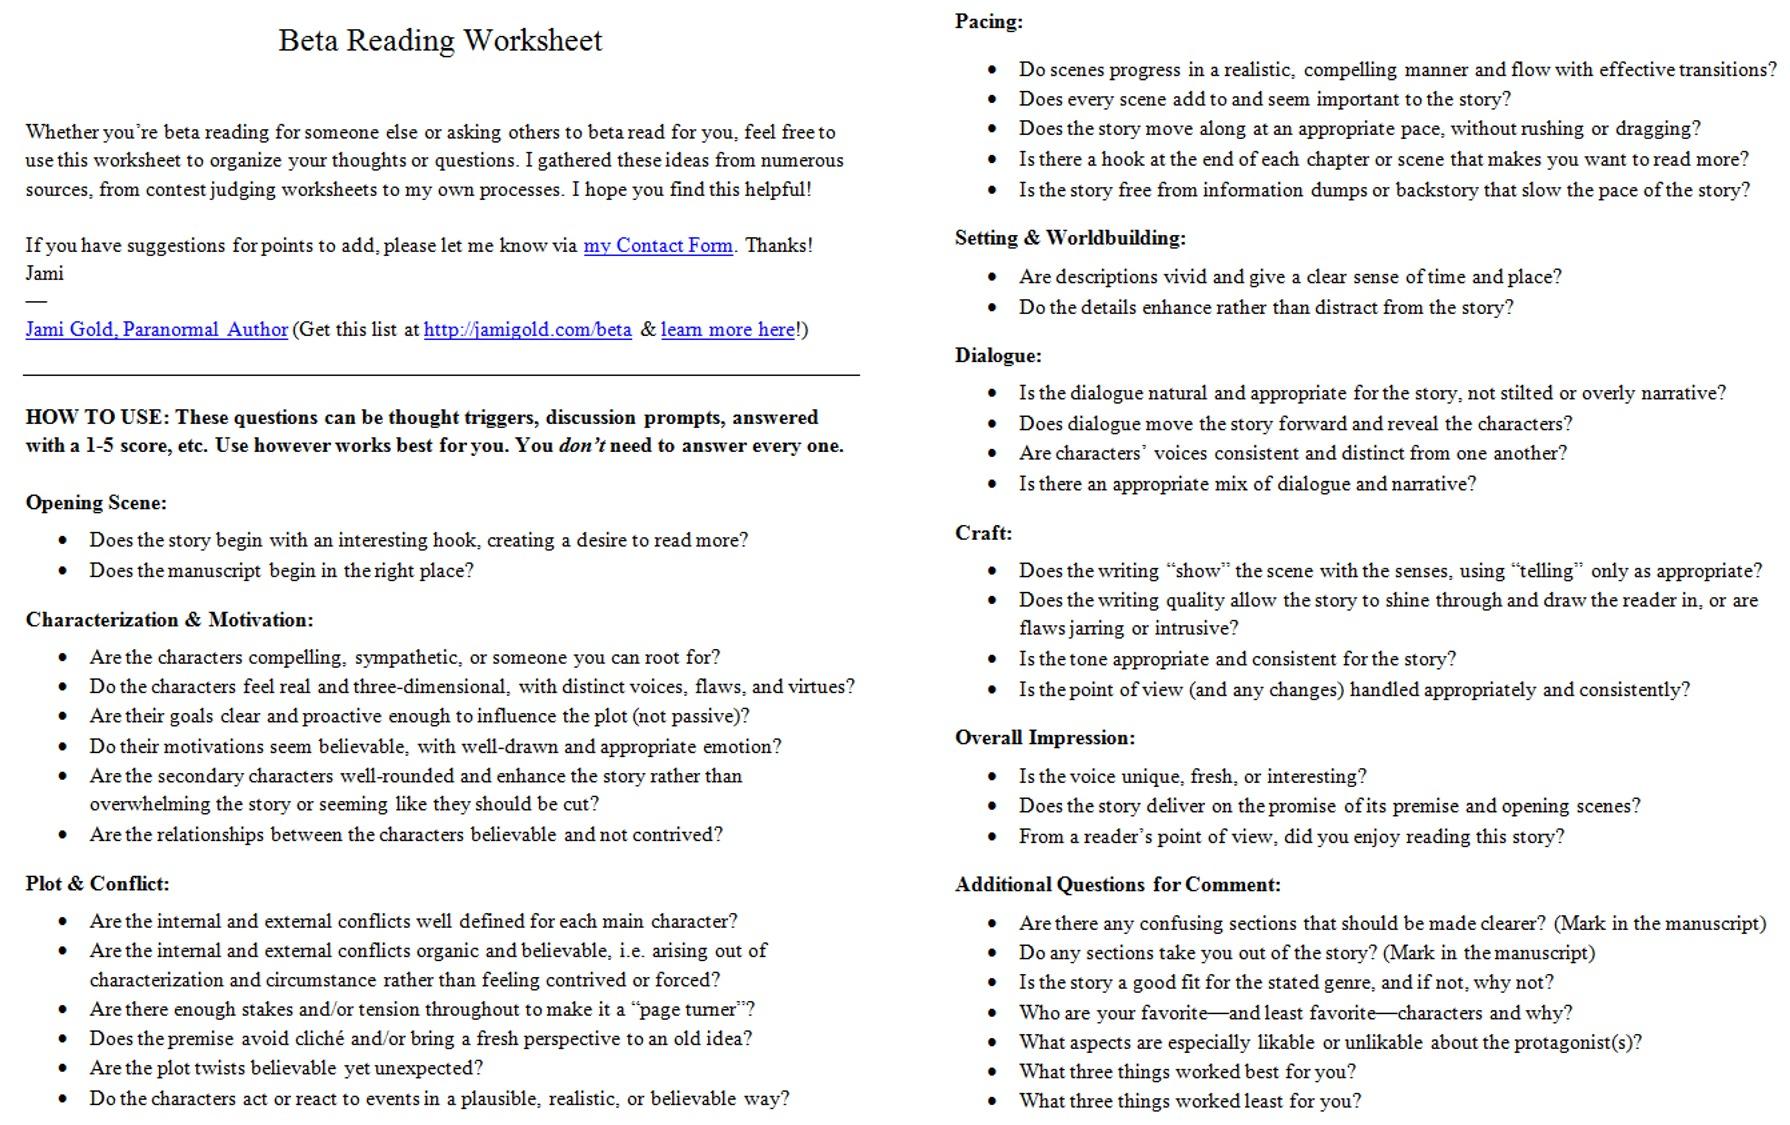 Aldiablosus  Terrific Worksheets For Writers  Jami Gold Paranormal Author With Foxy Screen Shot Of The Twopage Beta Reading Worksheet With Cool Middle School Vocabulary Worksheets Also Shapes Worksheet Kindergarten In Addition Visual Motor Worksheets And Th Grade Pre Algebra Worksheets As Well As Types Of Triangles Worksheets Additionally Double Bar Graph Worksheets From Jamigoldcom With Aldiablosus  Foxy Worksheets For Writers  Jami Gold Paranormal Author With Cool Screen Shot Of The Twopage Beta Reading Worksheet And Terrific Middle School Vocabulary Worksheets Also Shapes Worksheet Kindergarten In Addition Visual Motor Worksheets From Jamigoldcom